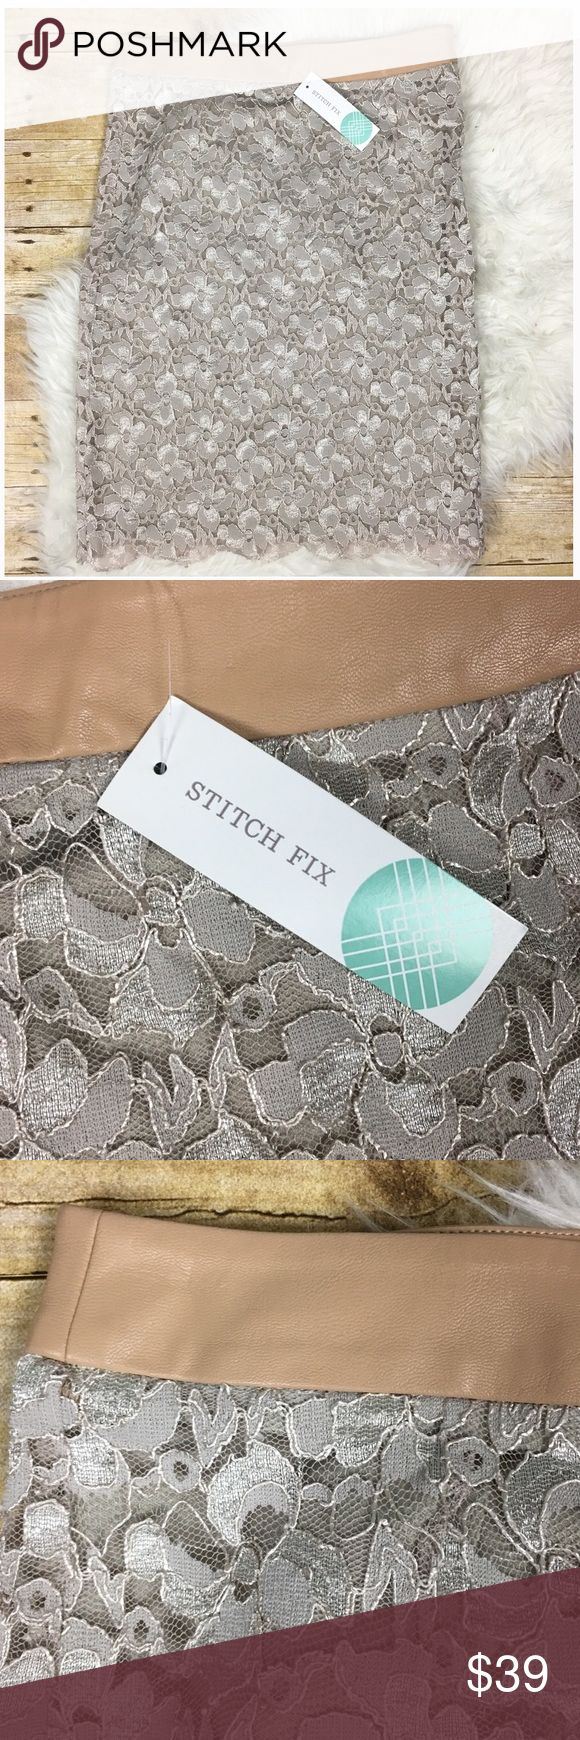 Stitch Fix Brixon Ivy Cyndi Lace Pencil Skirt Stitch Fix Brixon Ivy Cyndi Lace Pencil Skirt Size M Beige color with a metallic sheen 80% acrylic 15% polyester 5% apan Lace Scalloped hem Faux leather waistband Side zipper closure NWT stitch fix Skirts Pencil